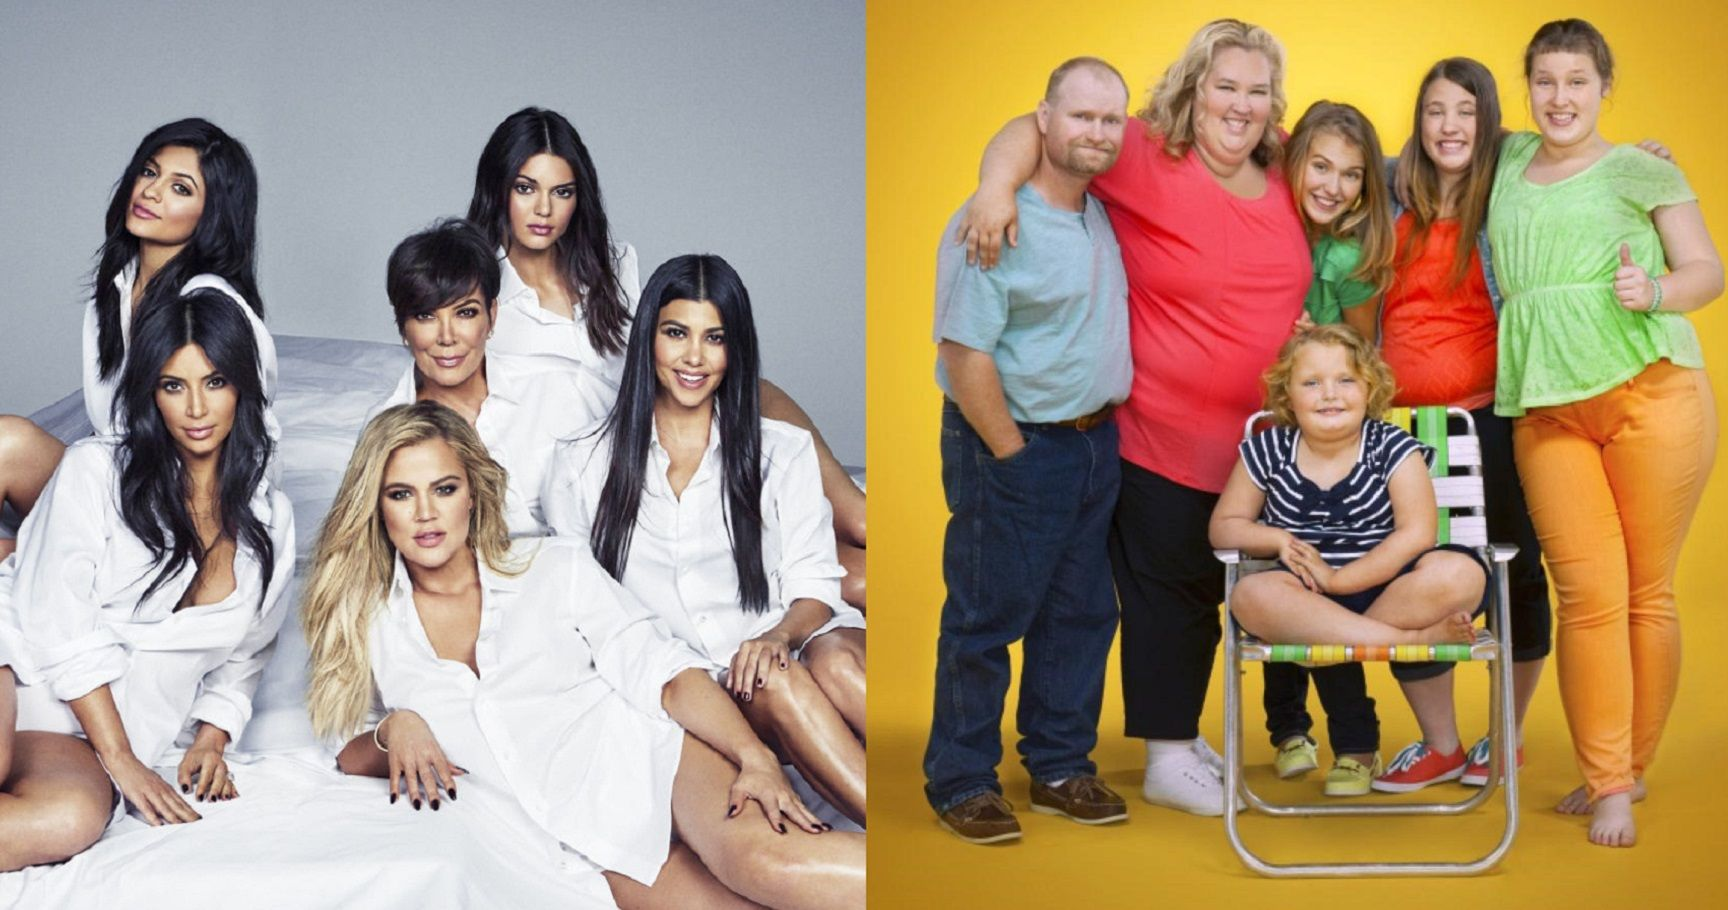 The 10 Most Annoying Reality TV Show Families